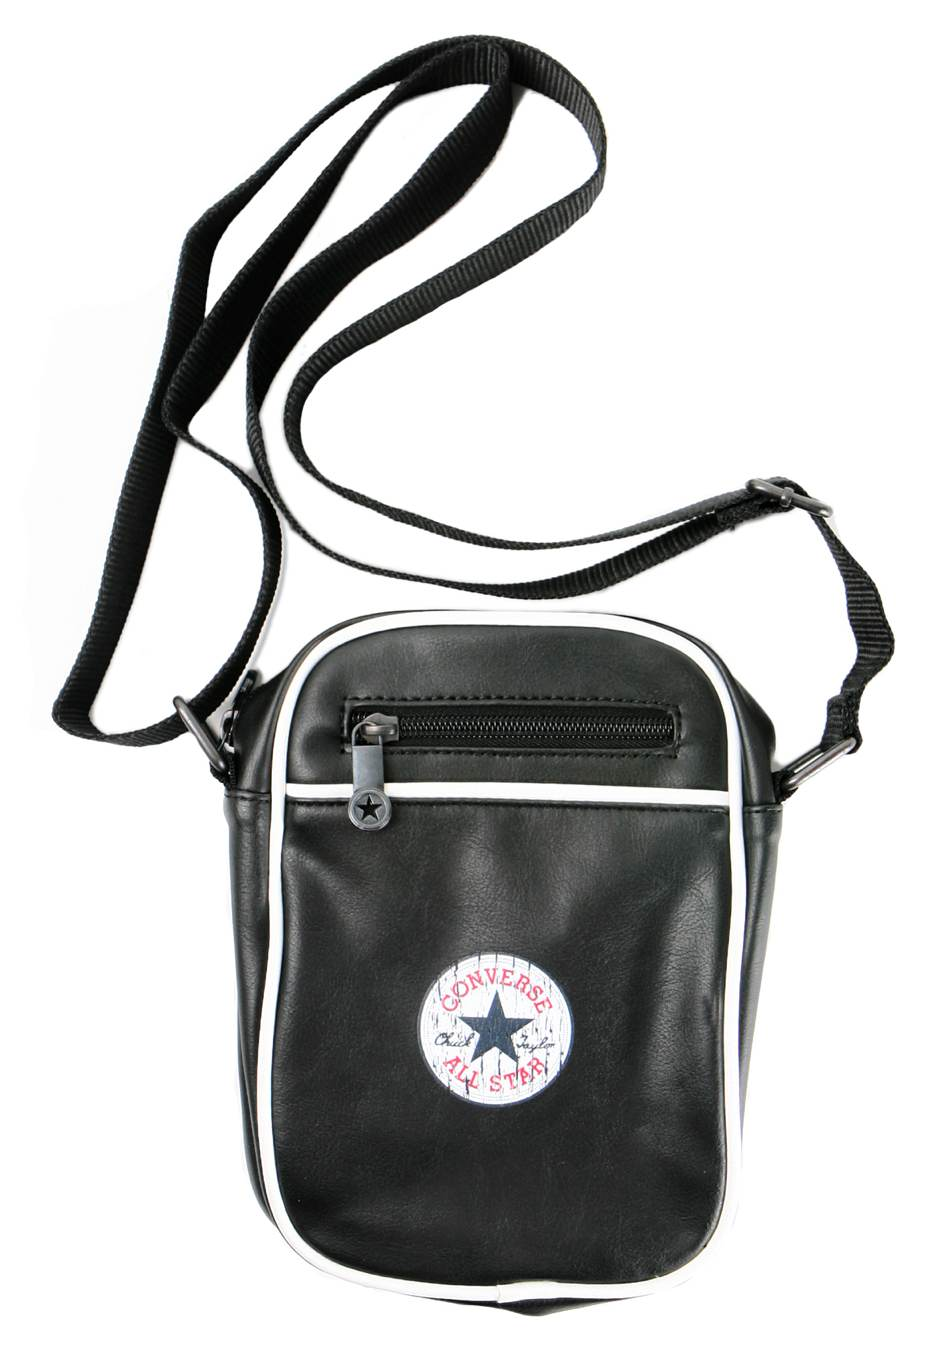 converse vintage patch small shoulder bag worldwide. Black Bedroom Furniture Sets. Home Design Ideas